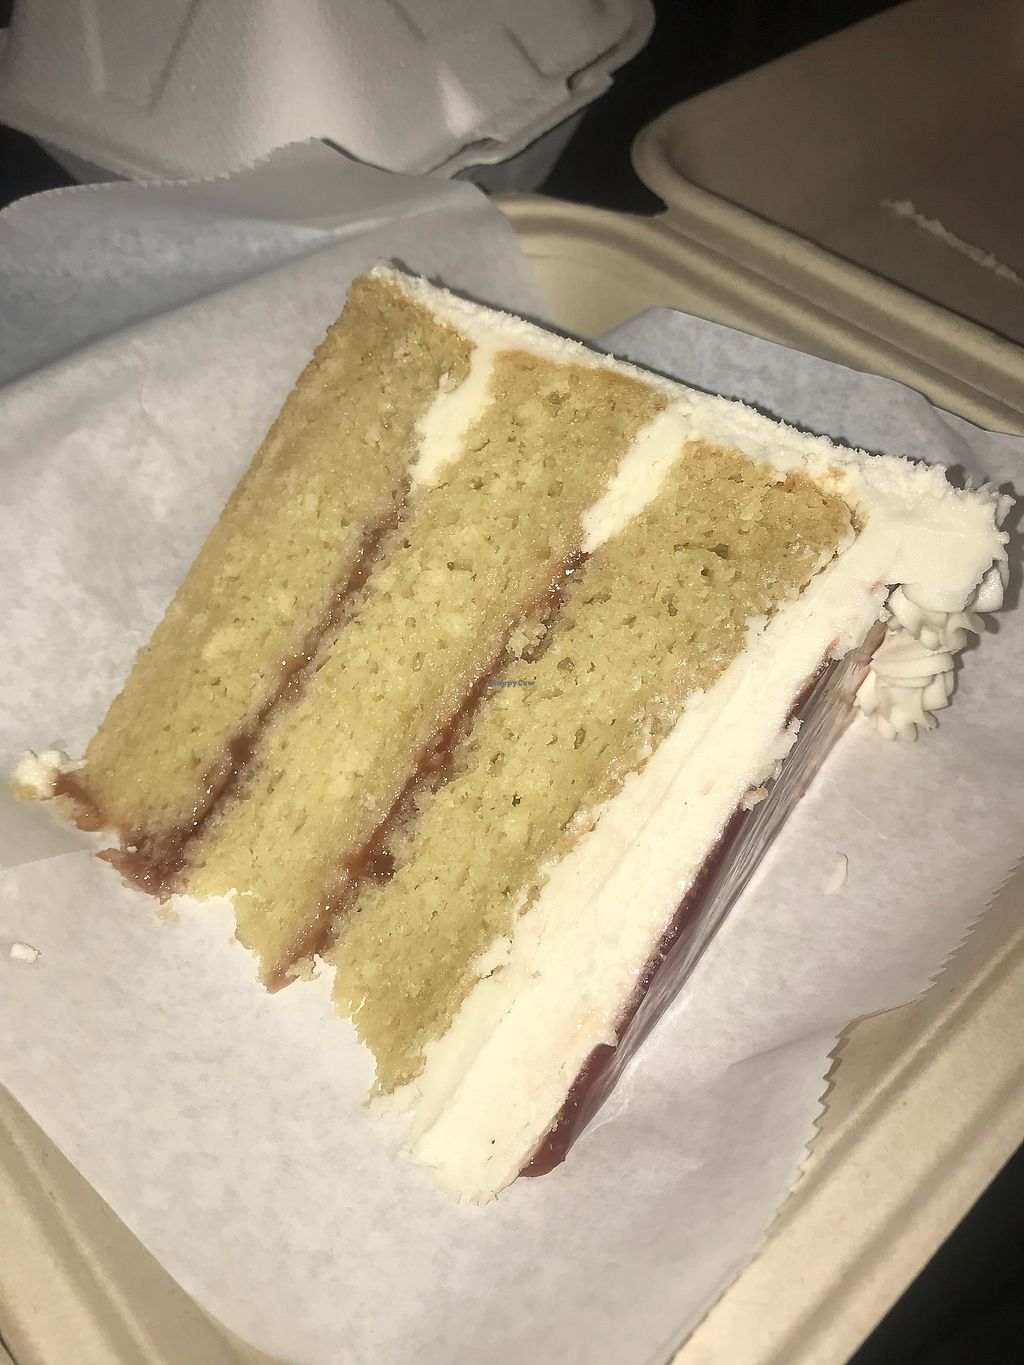 """Photo of Dulce Vegan Bakery and Cafe  by <a href=""""/members/profile/SamTyler"""">SamTyler</a> <br/>Lemon Raspberry Slice <br/> May 13, 2018  - <a href='/contact/abuse/image/26735/399380'>Report</a>"""